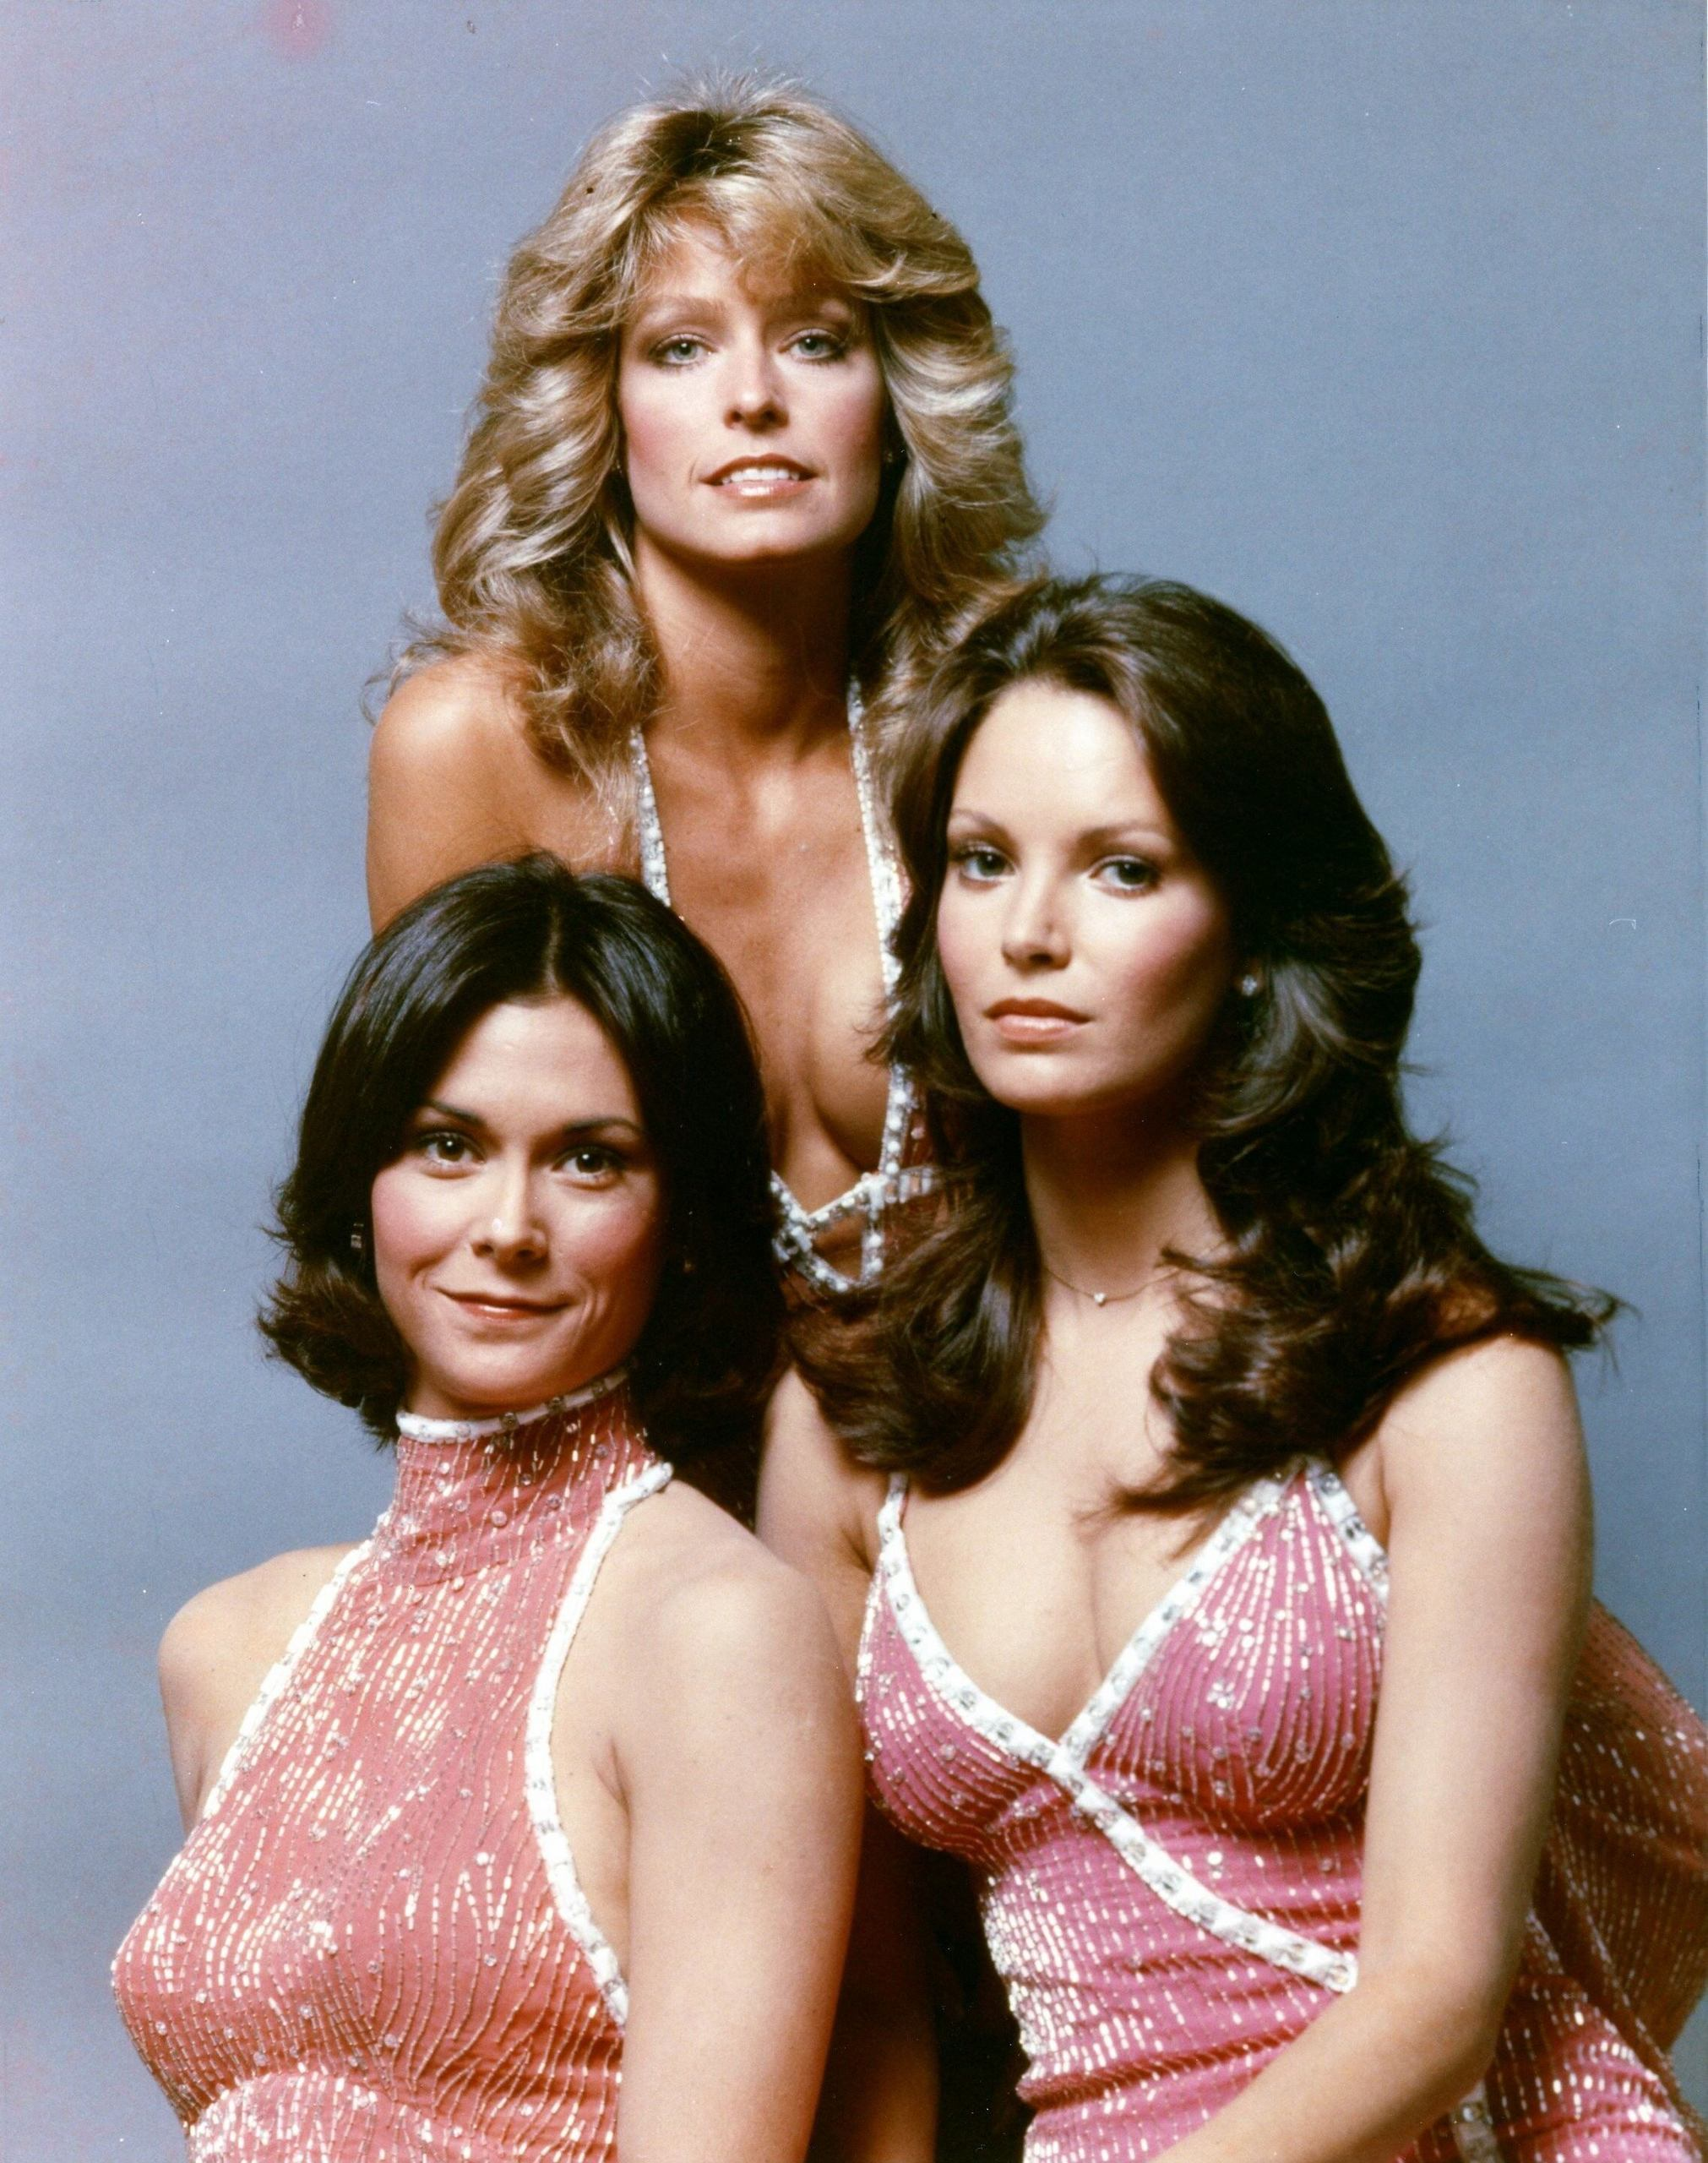 Les anges de Kate jackson charley